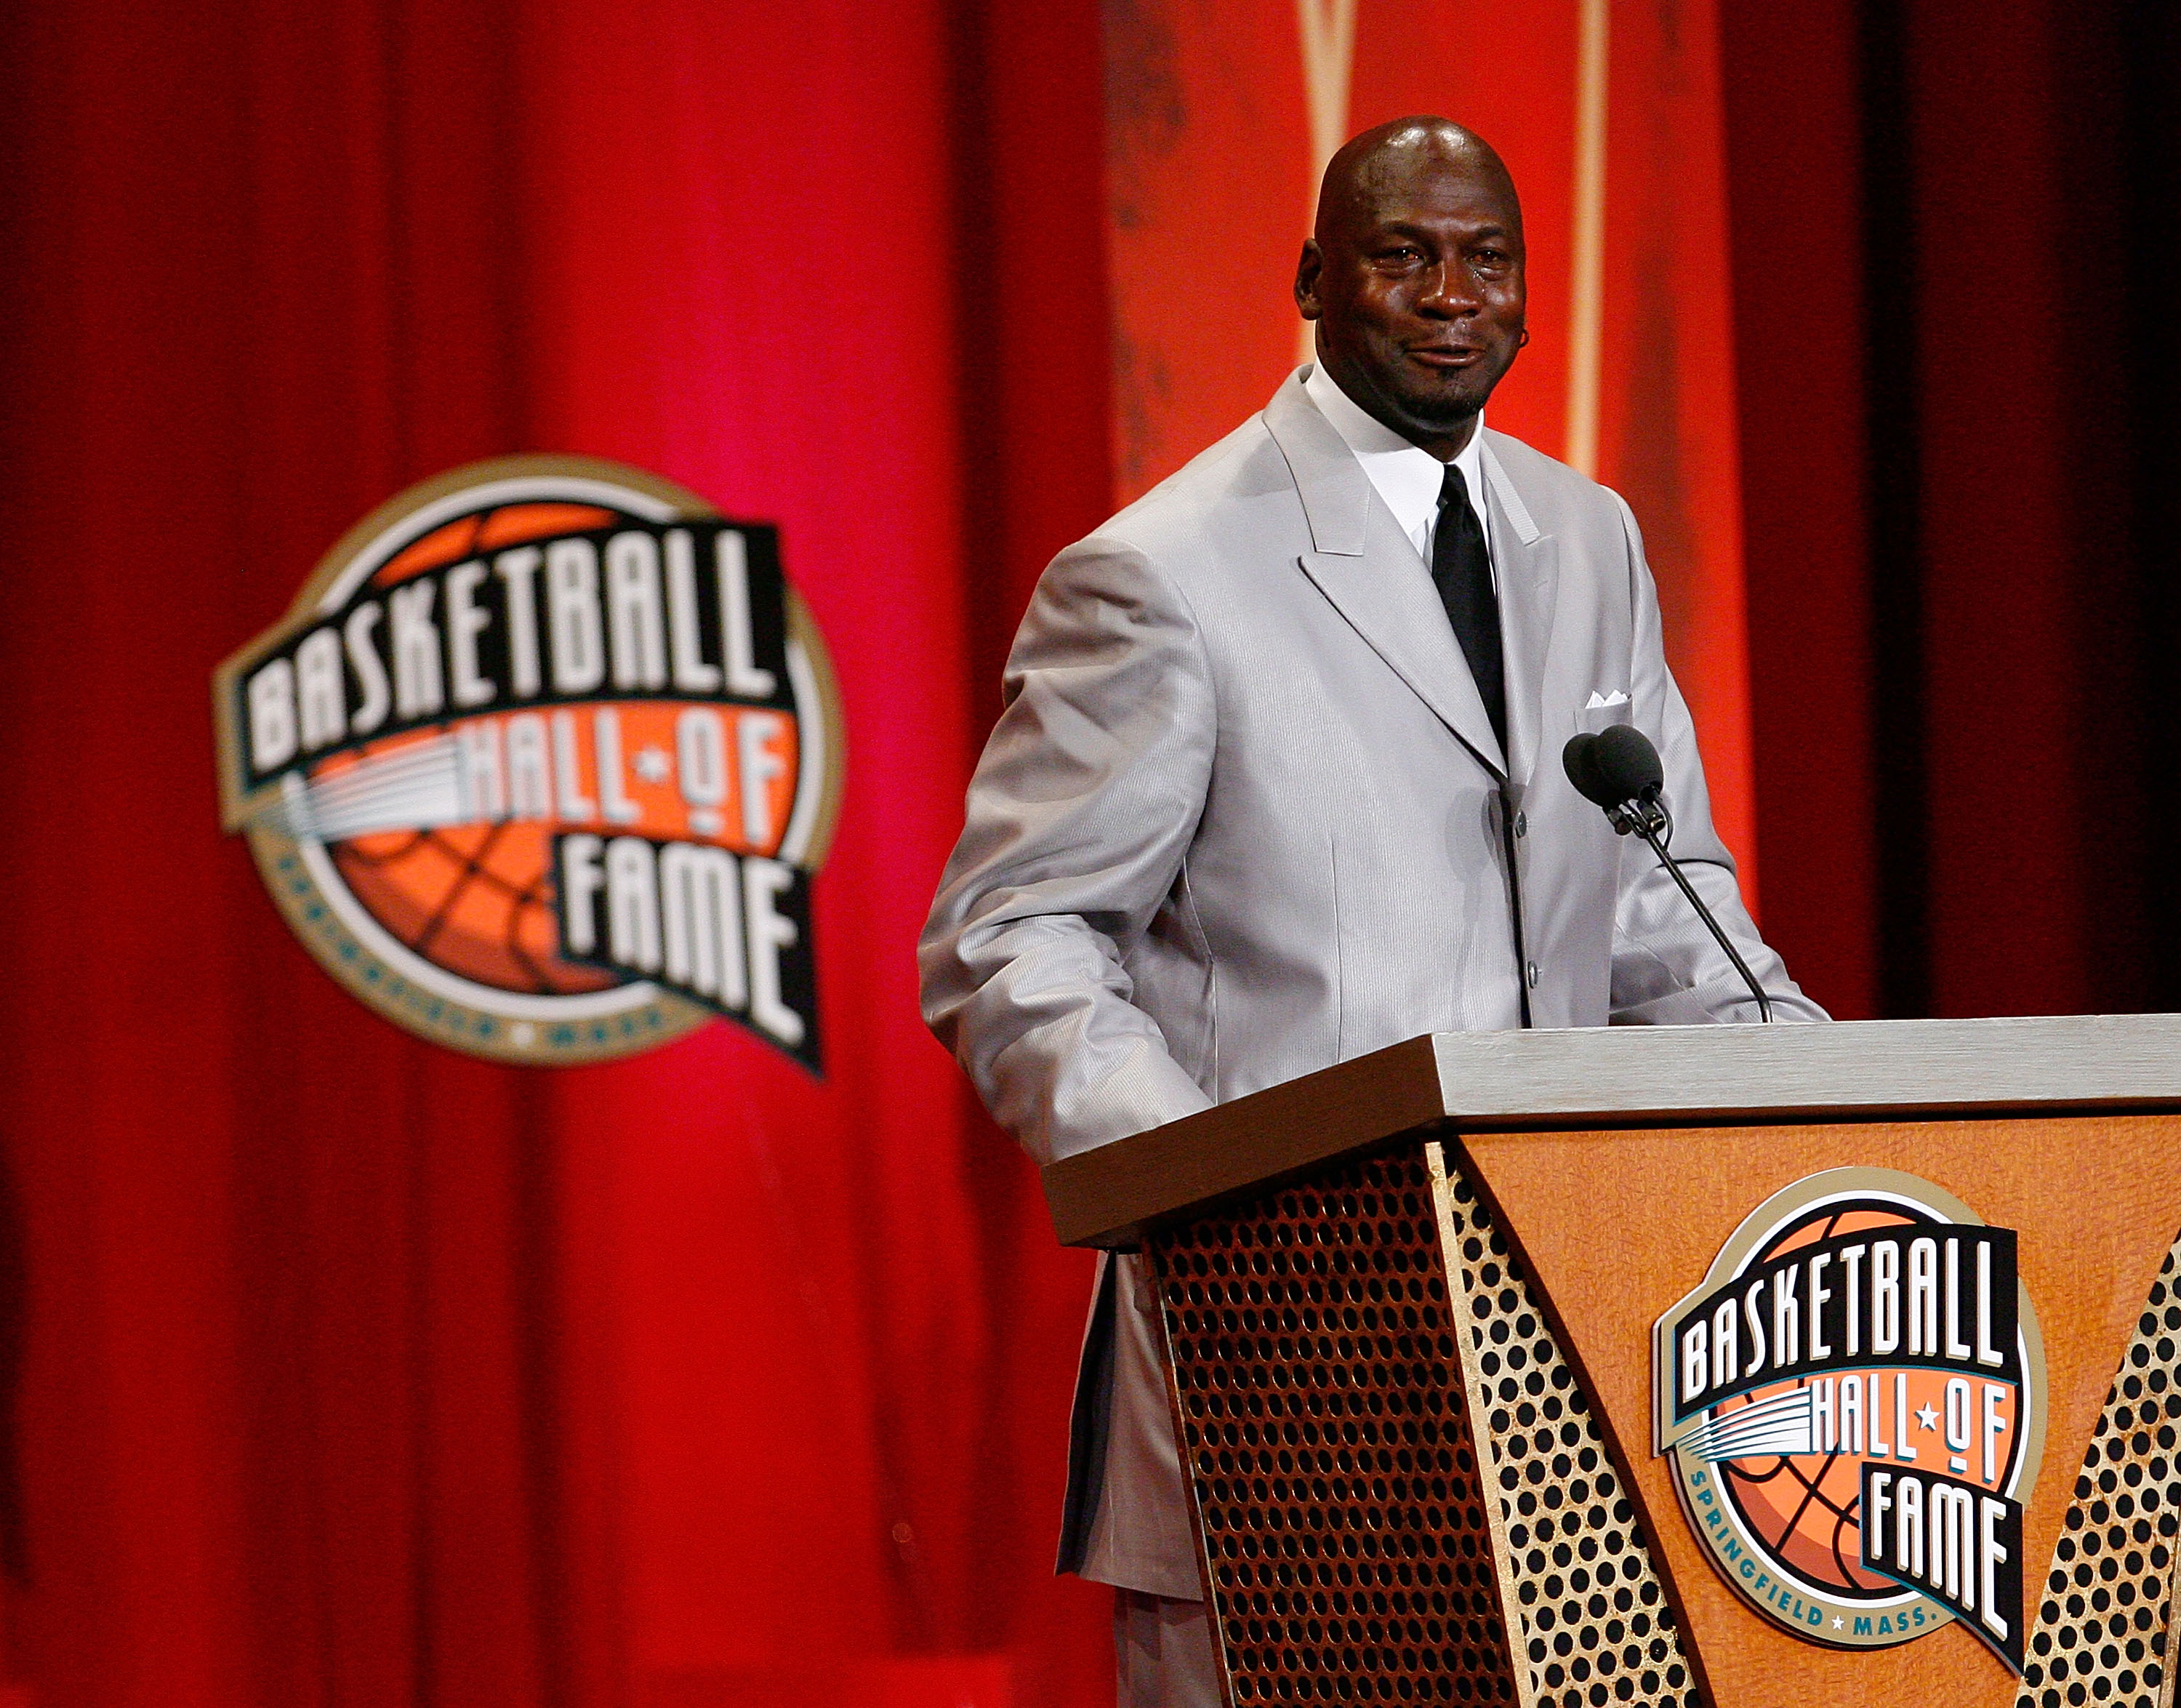 SPRINGFIELD, MA - SEPTEMBER 11: Michael Jordan to the Naismith Memorial Basketball Hall of Fame speaks during an induction ceremony on September 11, 2009 in Springfield, Massachusetts. NOTE TO USER: User expressly acknowledges and agrees that, by download